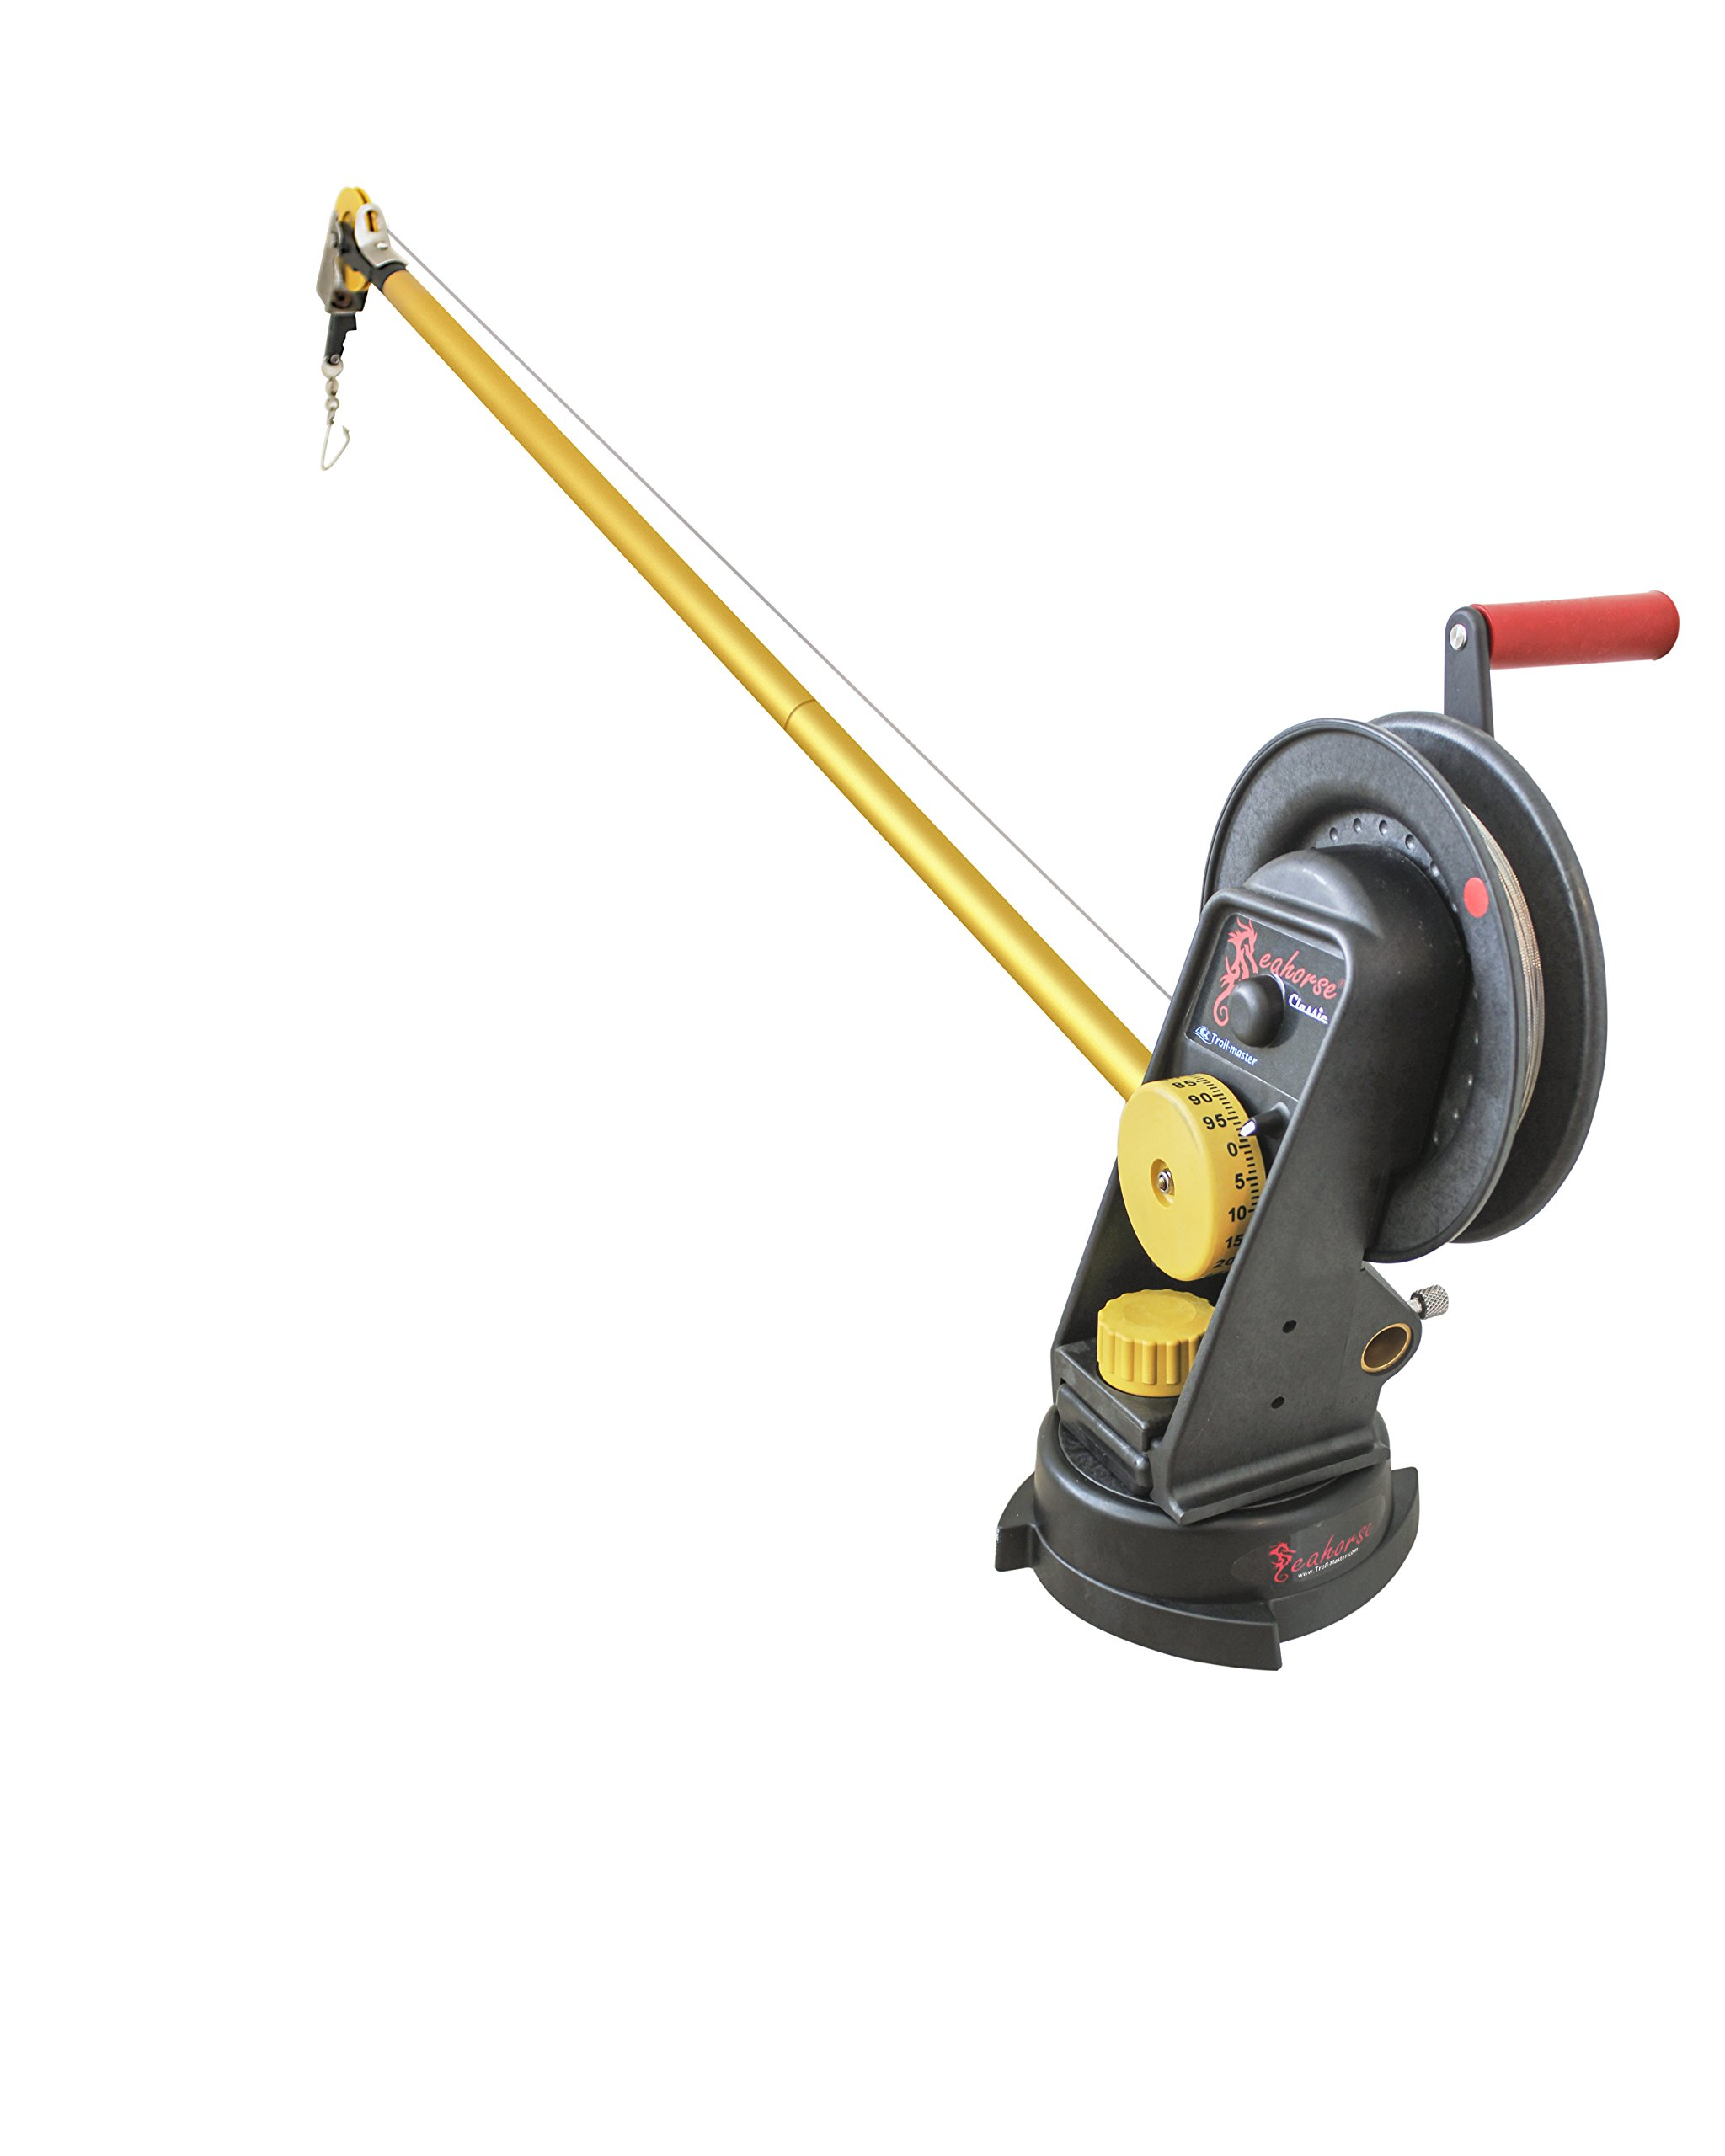 Seahorse Manual Downrigger with swivel base and extended boom By Troll-master by Seahorse